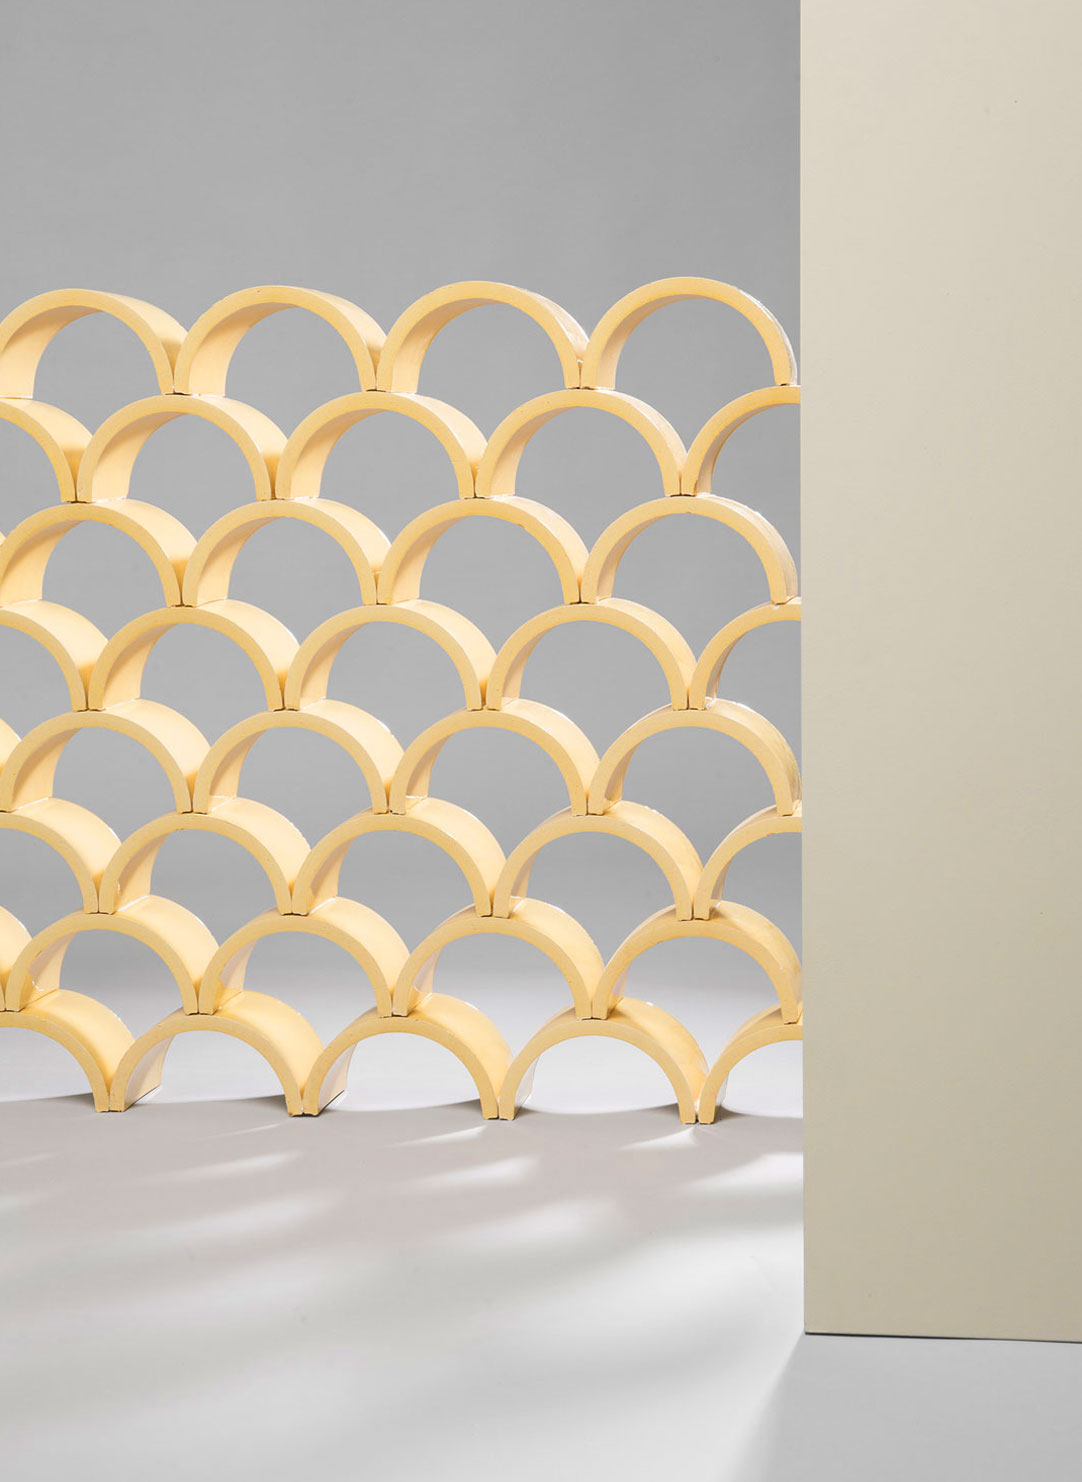 Curva Ceramic Sunbreaks - Ceramic sunbreaks available in different colours and in the following finishes: vitrified, glazed and terracotta. mixture of clays from the area, giving them strength and unique properties for extrusion and single firing. The wide range of colours is derived from the clays themselves and from oxides applied together with a varnish unique for its transparency and smoothness, which gives the surface an appearance and texture similar to glass. The transparency of the surface and the unchanging quality achieved by the colours at a temperature above 1000° give a bright, warm personality to areas laid with glazed tile. The compatibility between different colours is surprising, which allows the most diverse applications and most imaginative combinations, always in a harmonious and pleasant combination.  Water absorption: UNE-EN ISO 10545-3:1997 13% AVERAGE Frost resistance:  UNE-EN ISO 10545-12:1997 All colours resist test except brown and red; cracks appear after 100 +5°C/-5°C cycles. Resistance to chemical agents / acids and alkalis of high concentrations: UNE-EN ISO 10545-13:2017 Household chemicals and pool salts GA Acids and alkalis of low concentrations GLA Acids and alkalis of high concentrations GHA Resistance to surface abrasion: UNE-EN ISO 10545-7:1999 PEI RATING 1–2 COLOR DEPENDENT Linear thermal expansion: UNE-EN ISO 10545-8:2014 6x10-6/°C Crazing resistance: UNE-EN ISO 10545-11:1997 No defects are observed   Matter of Stuff